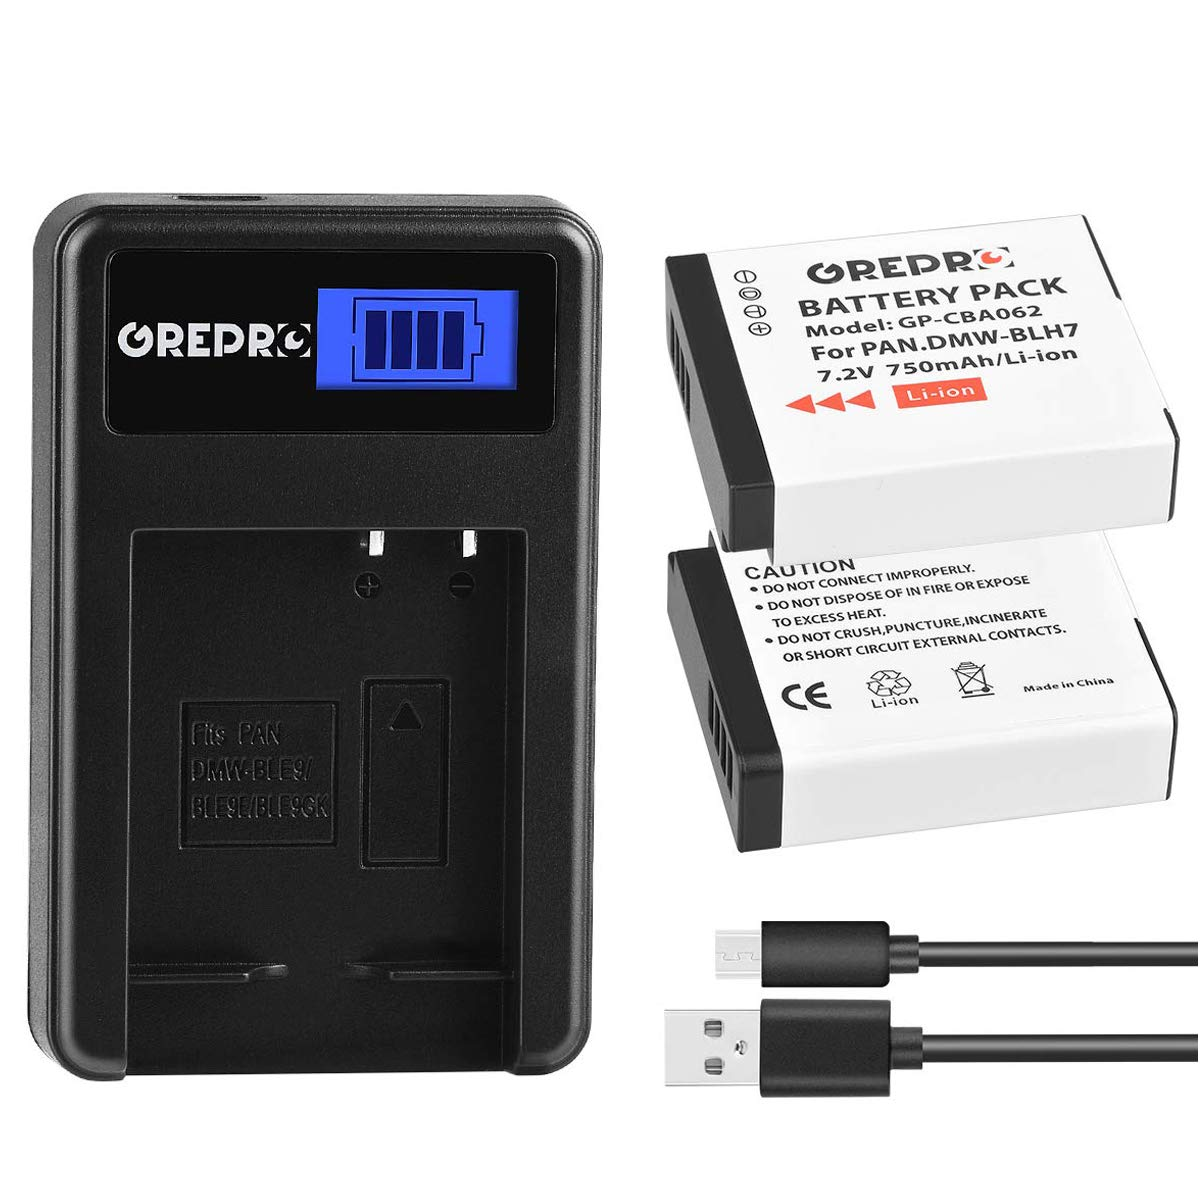 Grepro DMW-BLH7 DMW-BLH-7E Battery (2 Packs) and LCD USB Charger Kit for Panasonic DMW-BLH7, DMW-BLH7E, DMW-BLH7PP, DMC-GM1, DMC-GM1K, DMC-GX850, DMC-GM5, DMC-GF7 DMC-LX10, DMC-LX15 Cameras by GREPRO